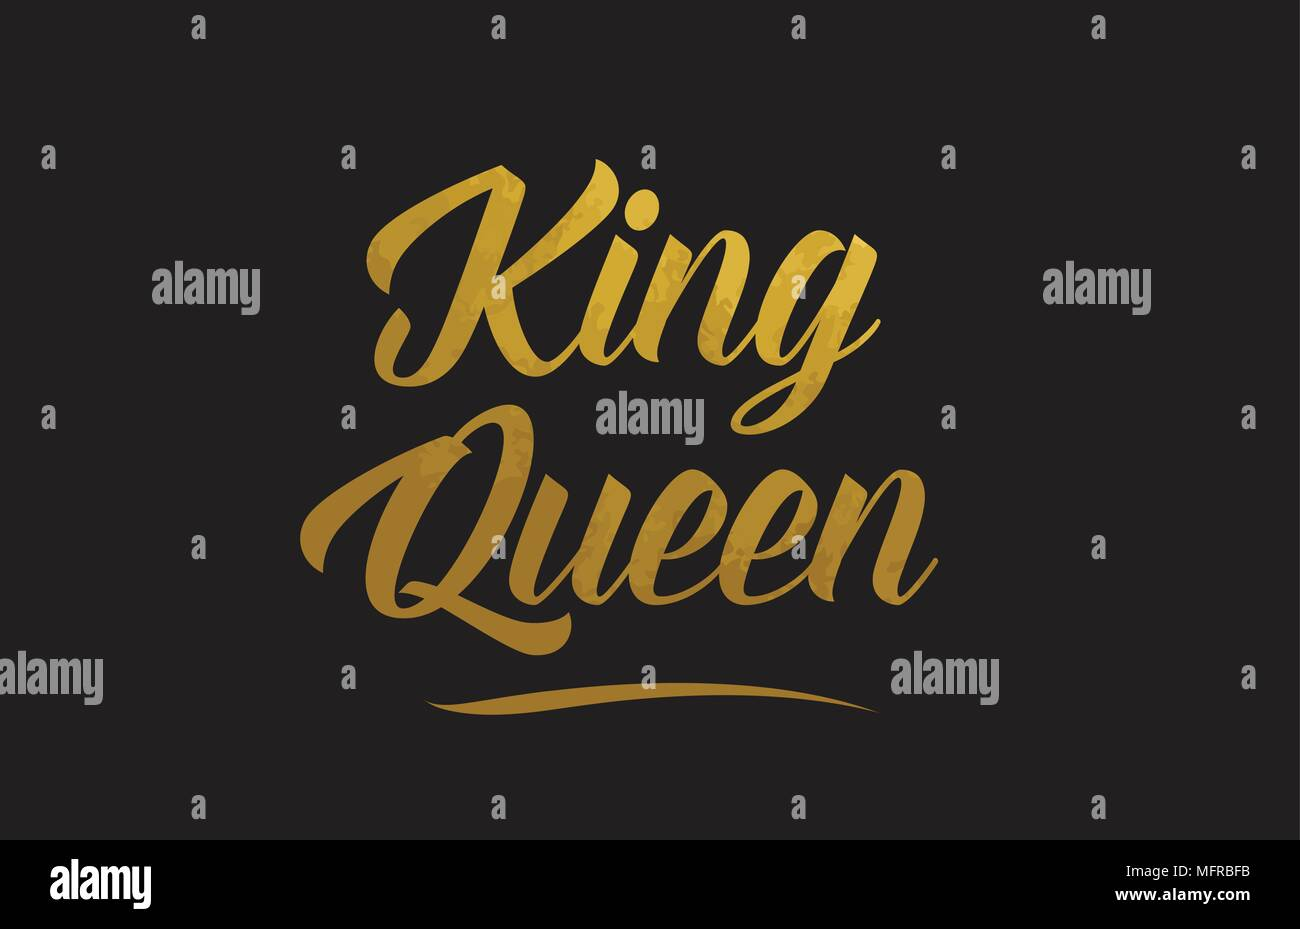 King Queen Or Word Texte Texture Convient Pour Carte De Visite Brochure Ou Typographie Design